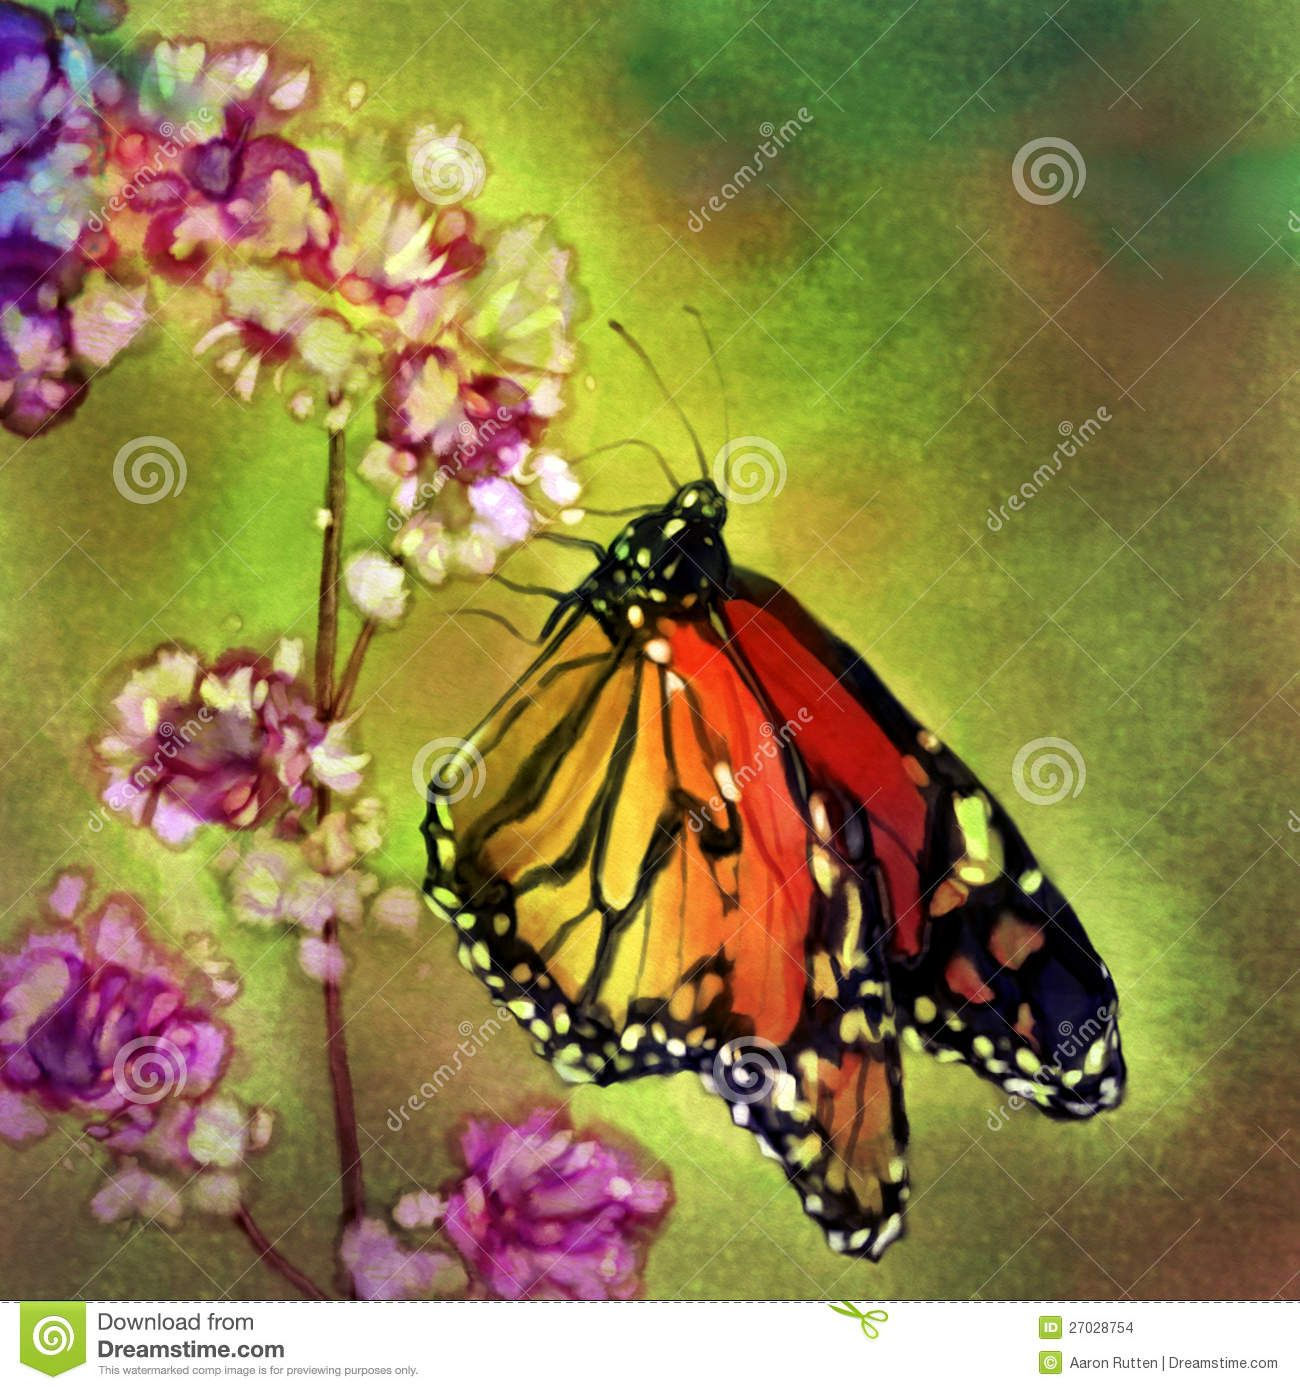 Monarch Butterfly Watercolor Painting Download From Over 29